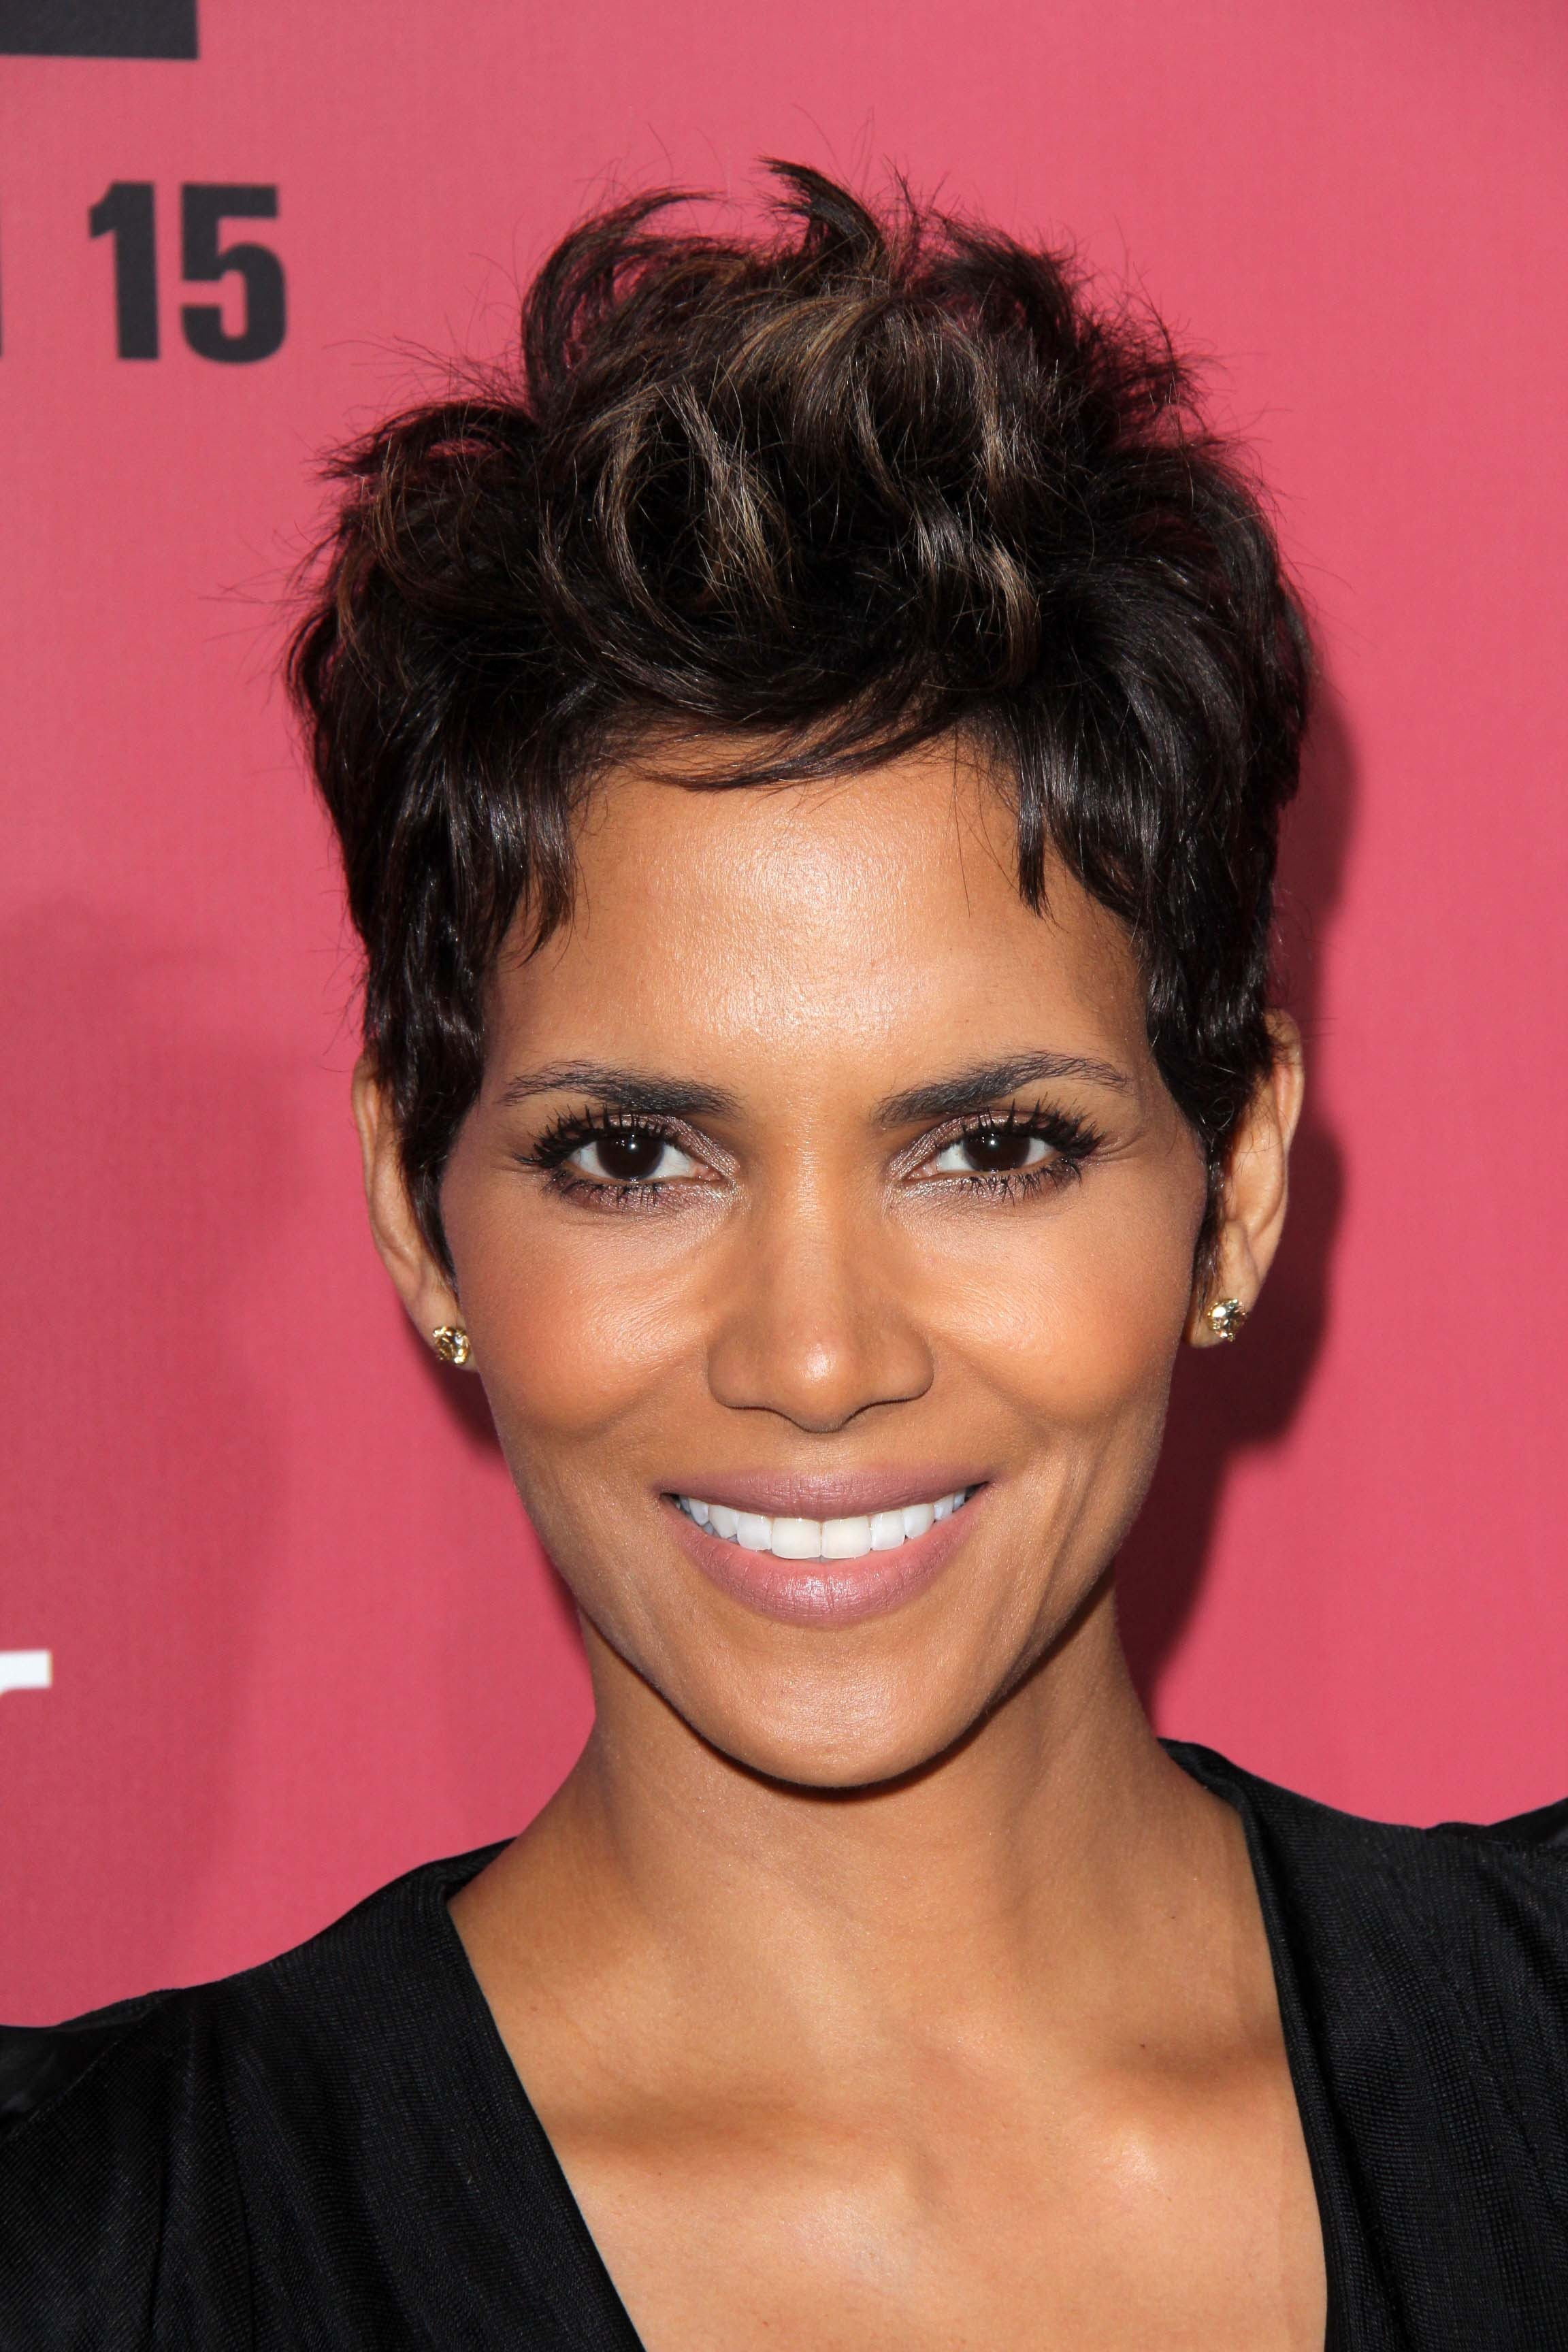 Halle Berry - Cushite Woman